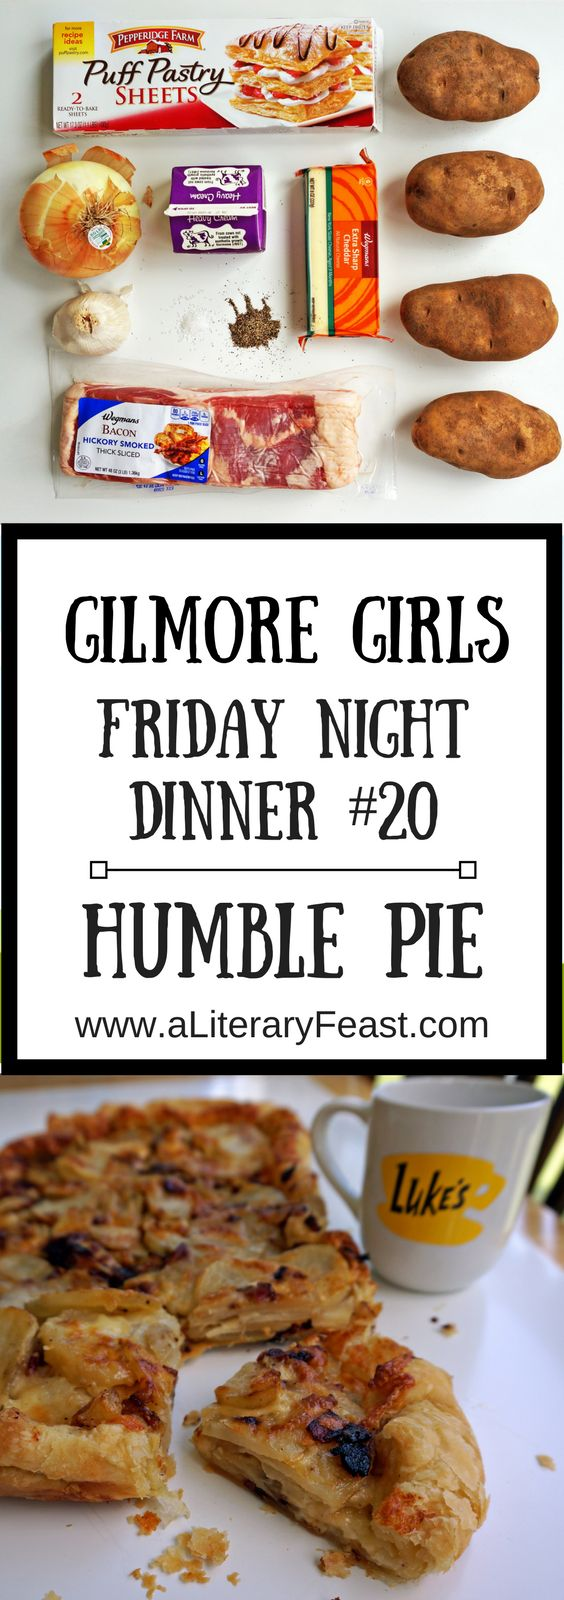 A Literary Feast | Gilmore Girls | Friday Night Dinner | Guest poster Laura (Mom Envy) cooks a Humble Pie with bacon, potatoes, and puff pastry. via @aliteraryfeast